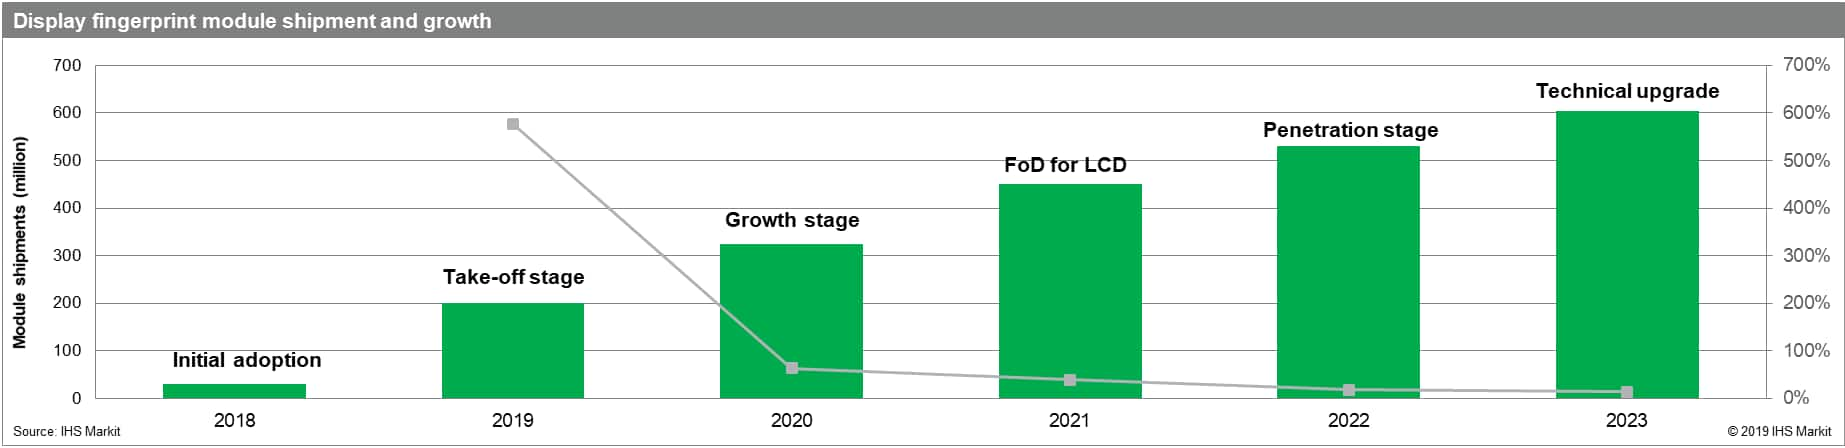 IHS Markit shipment forecast of fingerprint on display (FoD) modules